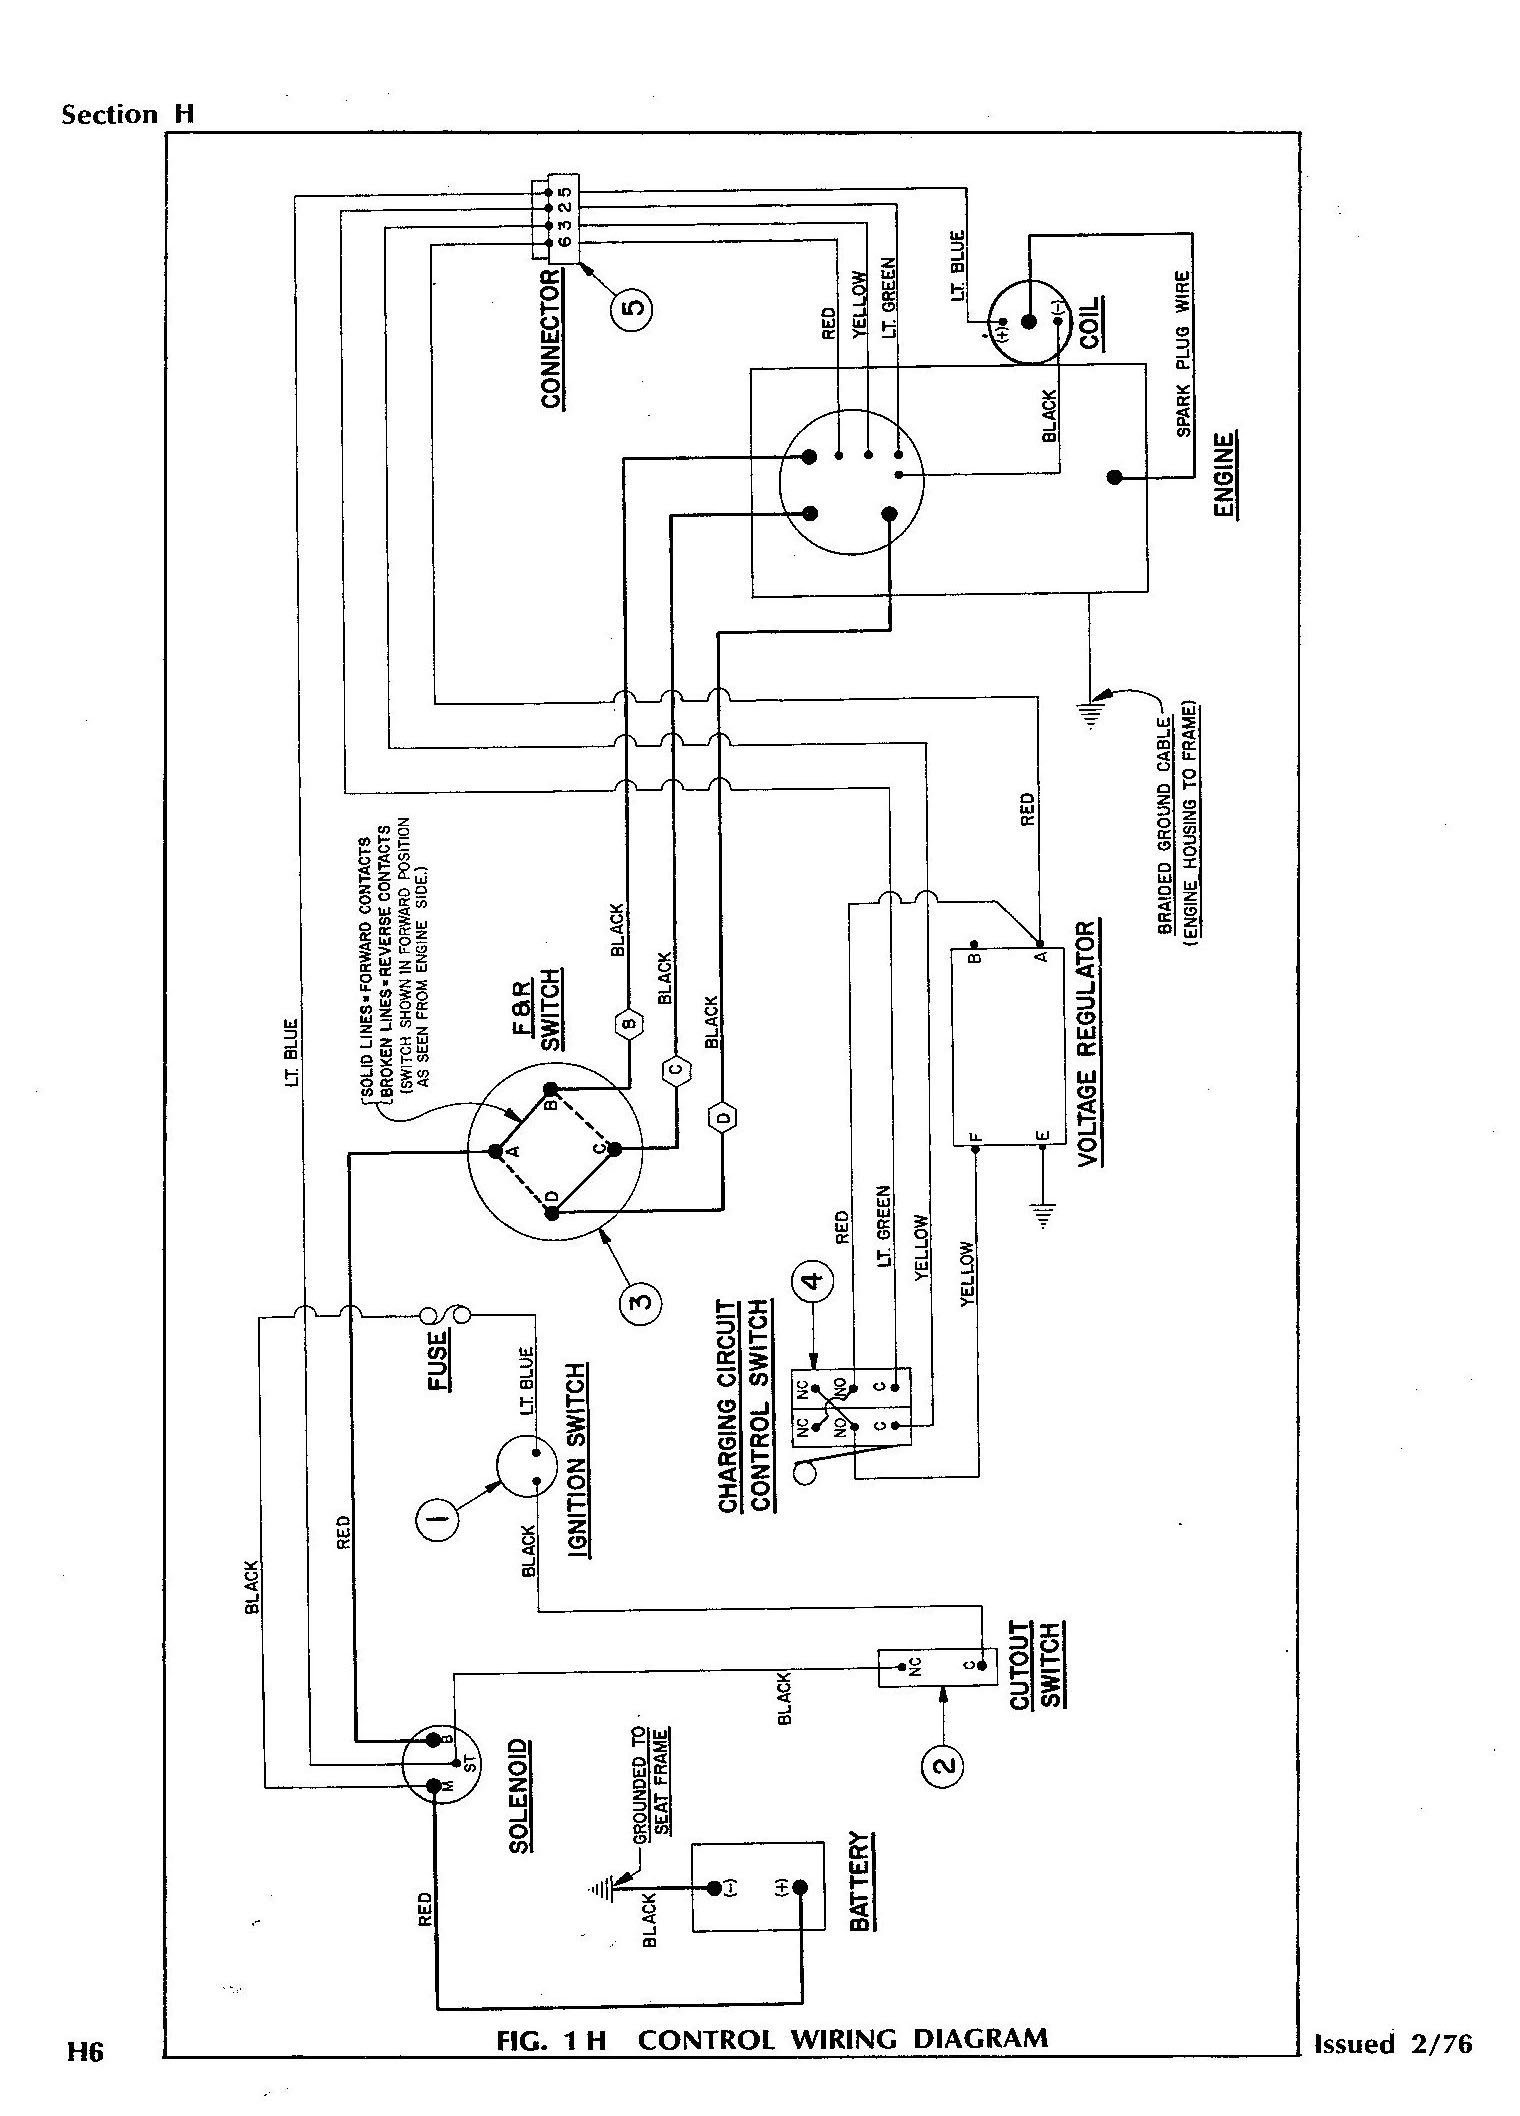 76E Z GO_Gas 2001 ez go wiring diagram 2001 wiring diagrams instruction ezgo gas wiring diagram at webbmarketing.co